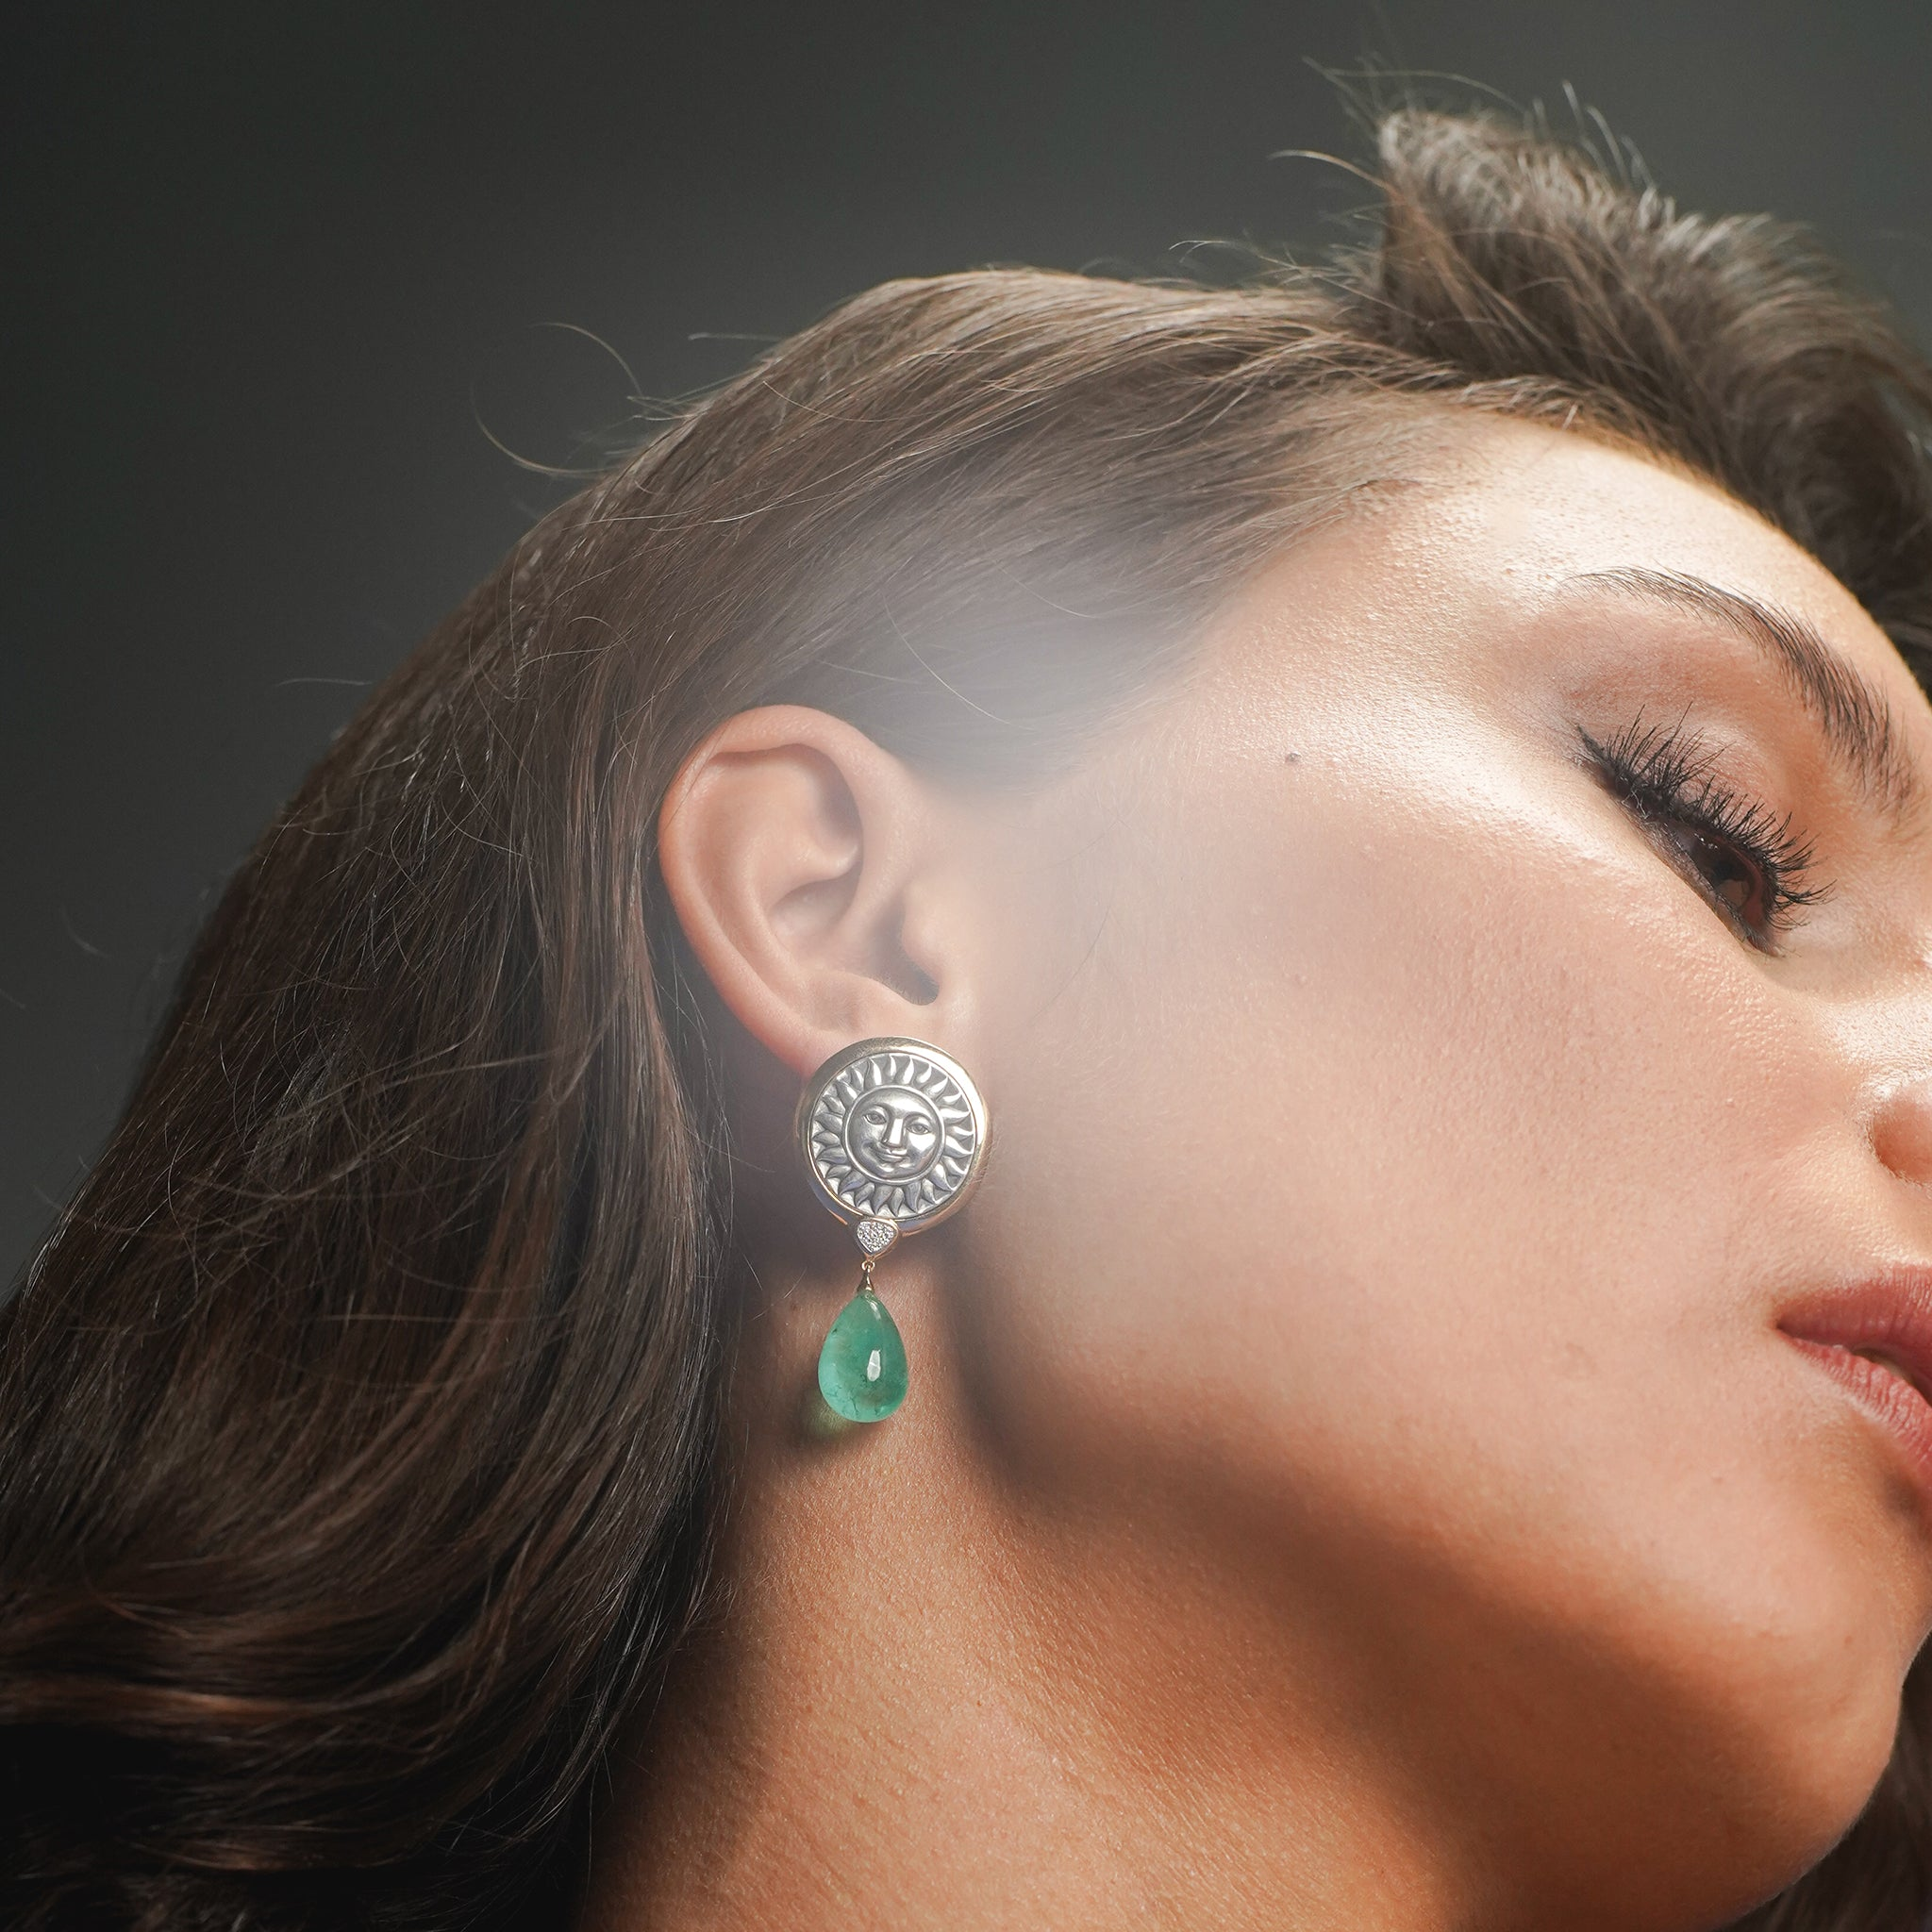 marinab.com, Soleil Limited Edition Muzo Earrings